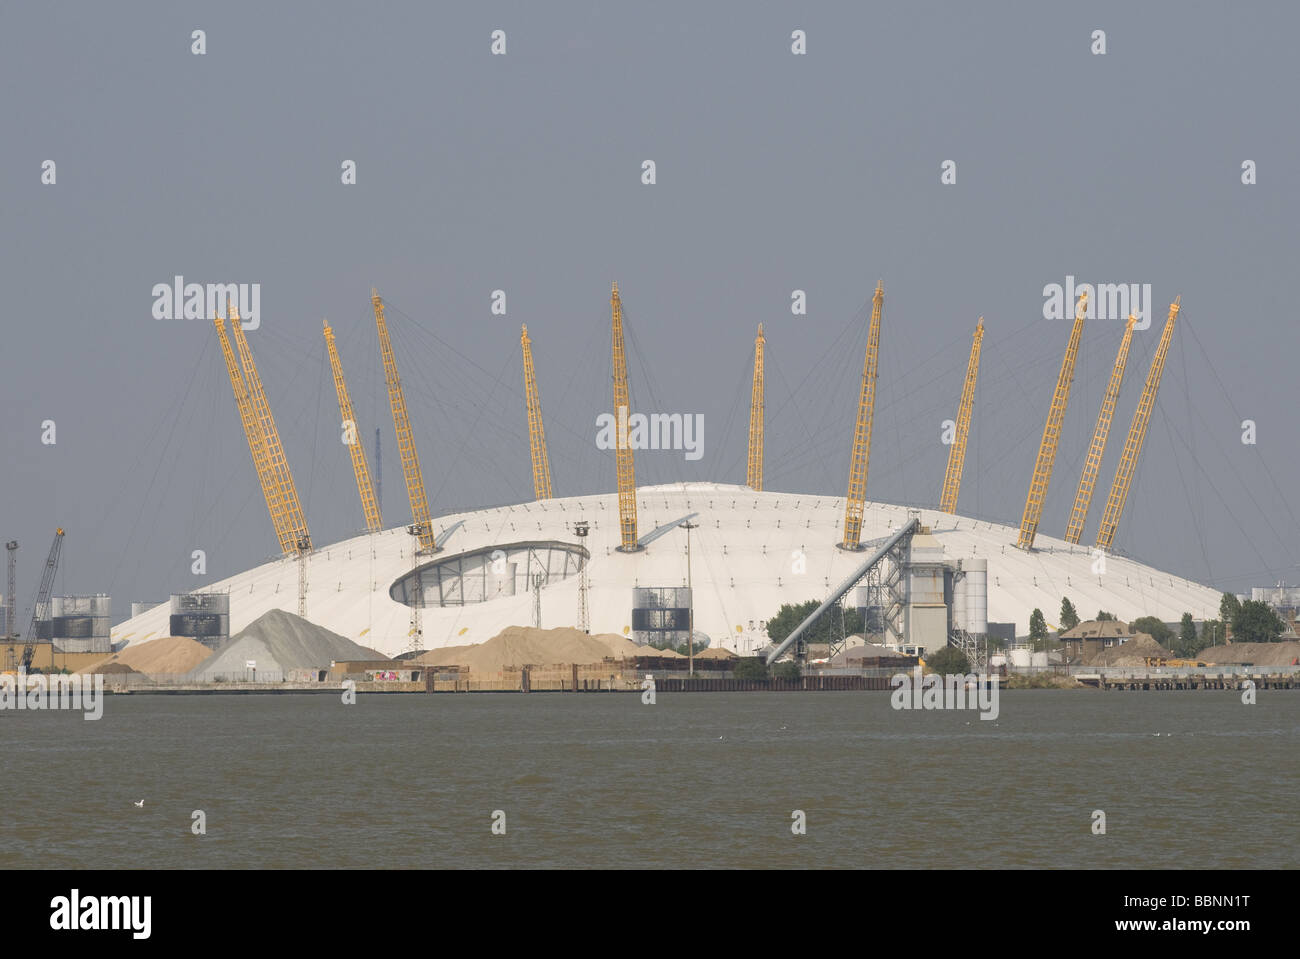 geography / travel, Great Britain, London, The Millennium Dome, exterior view, Additional-Rights-Clearance-Info - Stock Image